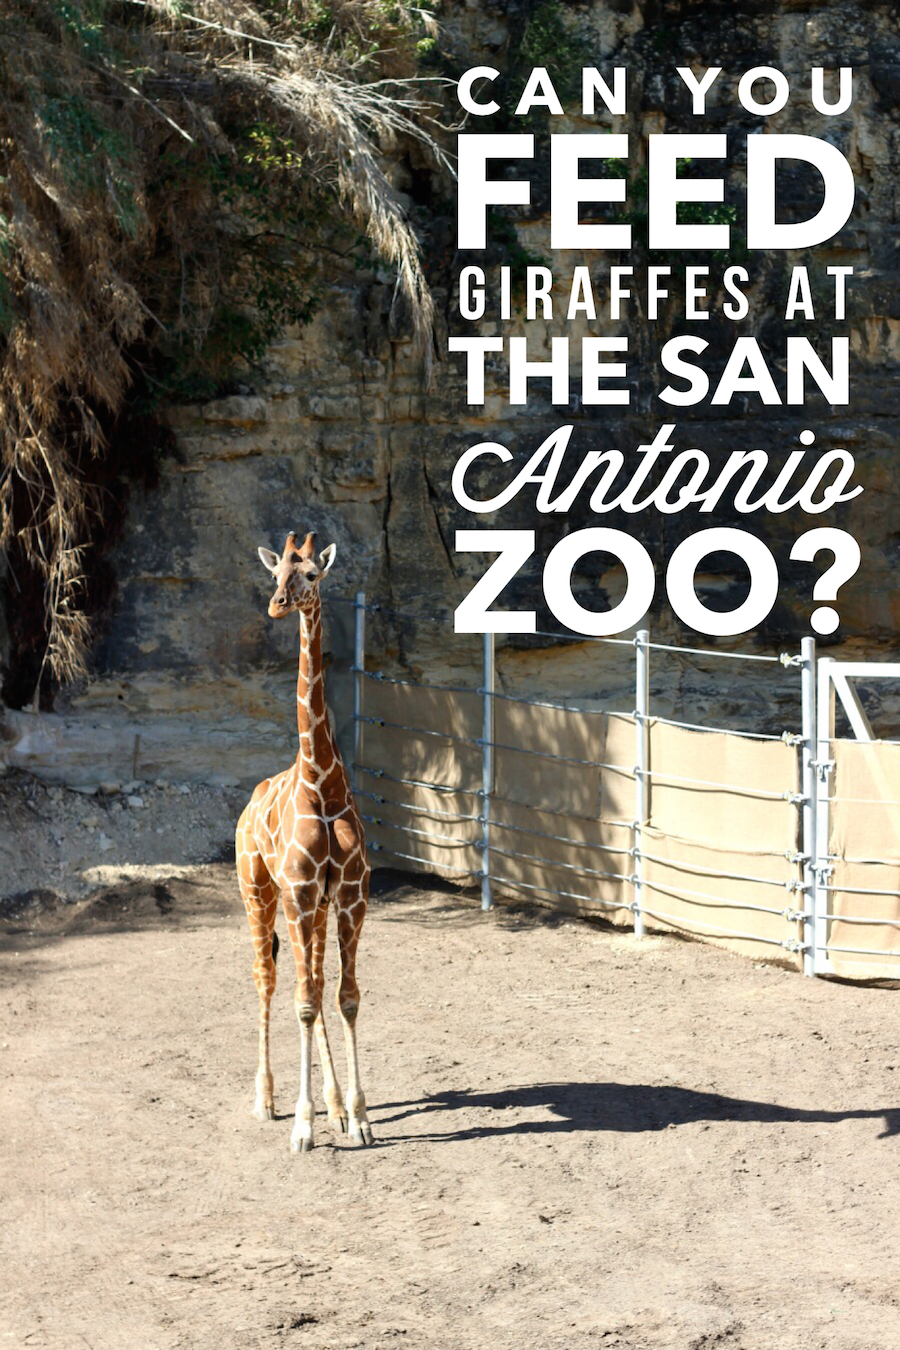 Can you feed giraffes at the San Antonio Zoo? yes! Starting March 2016 you can now hand feed 3 male giraffes from the walk-up feeding station - Read post for more info!